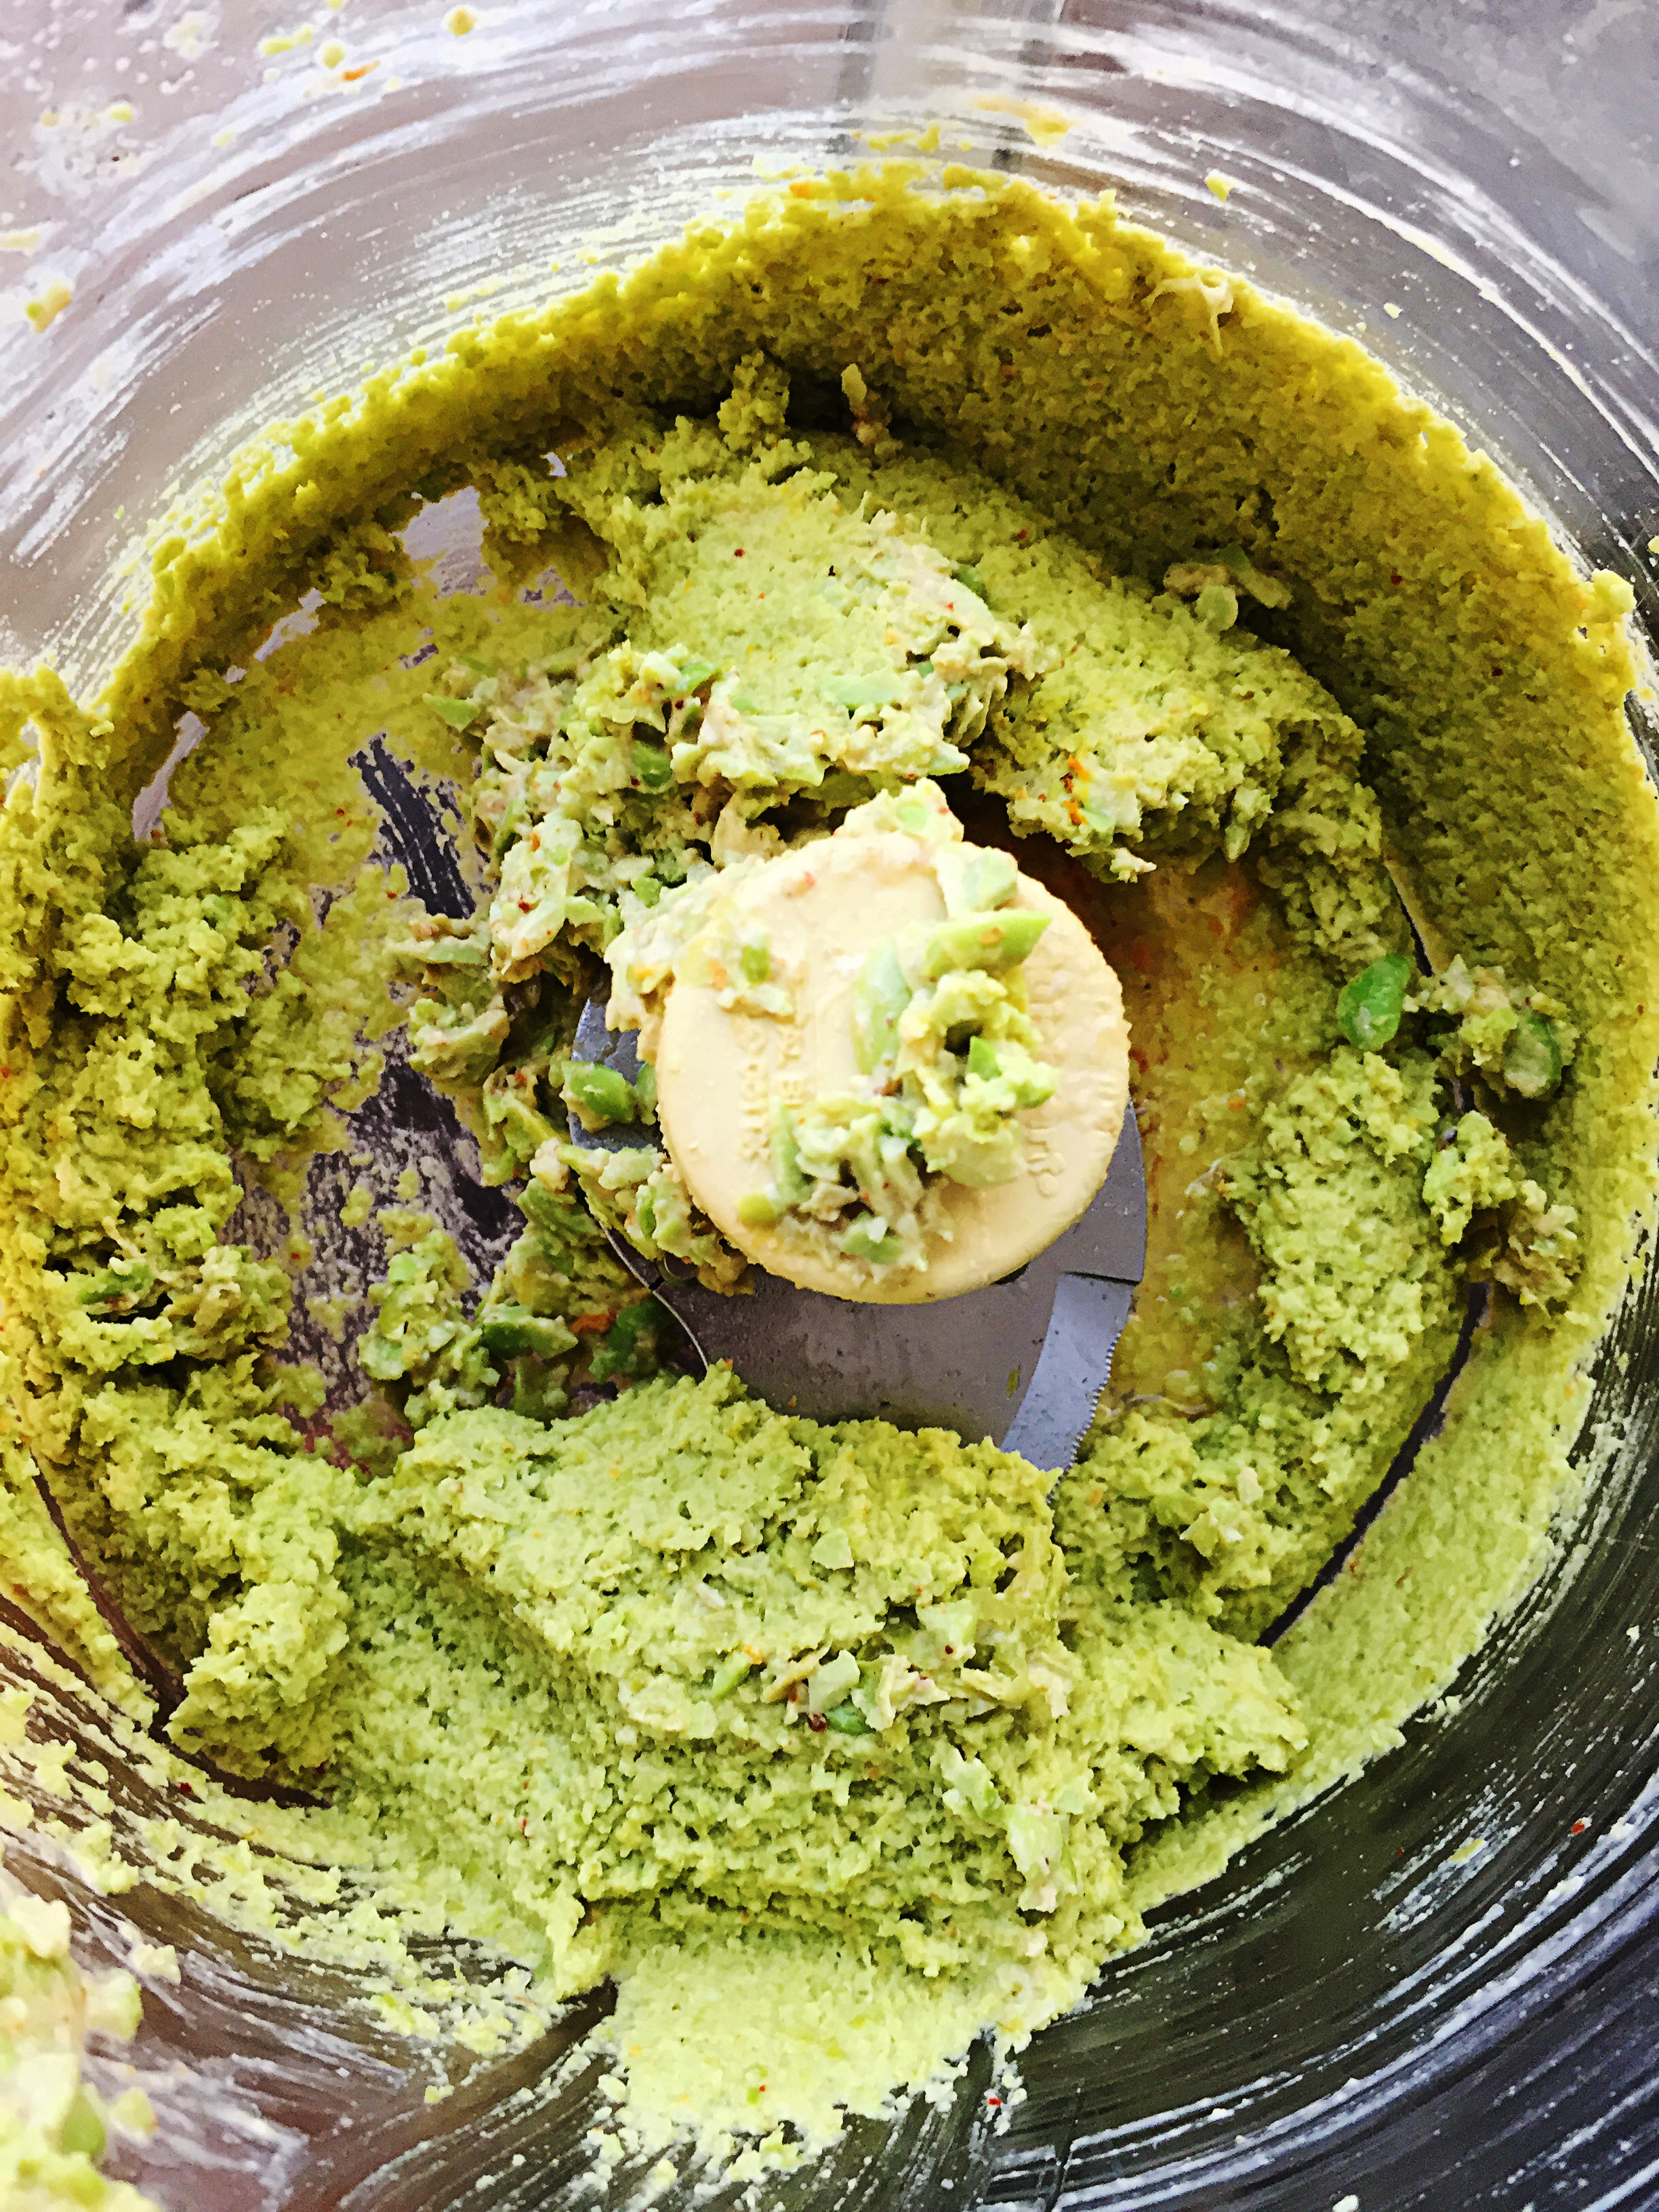 4. At the end of blending, you should have nearly ice cream consistency hummus. Yum.